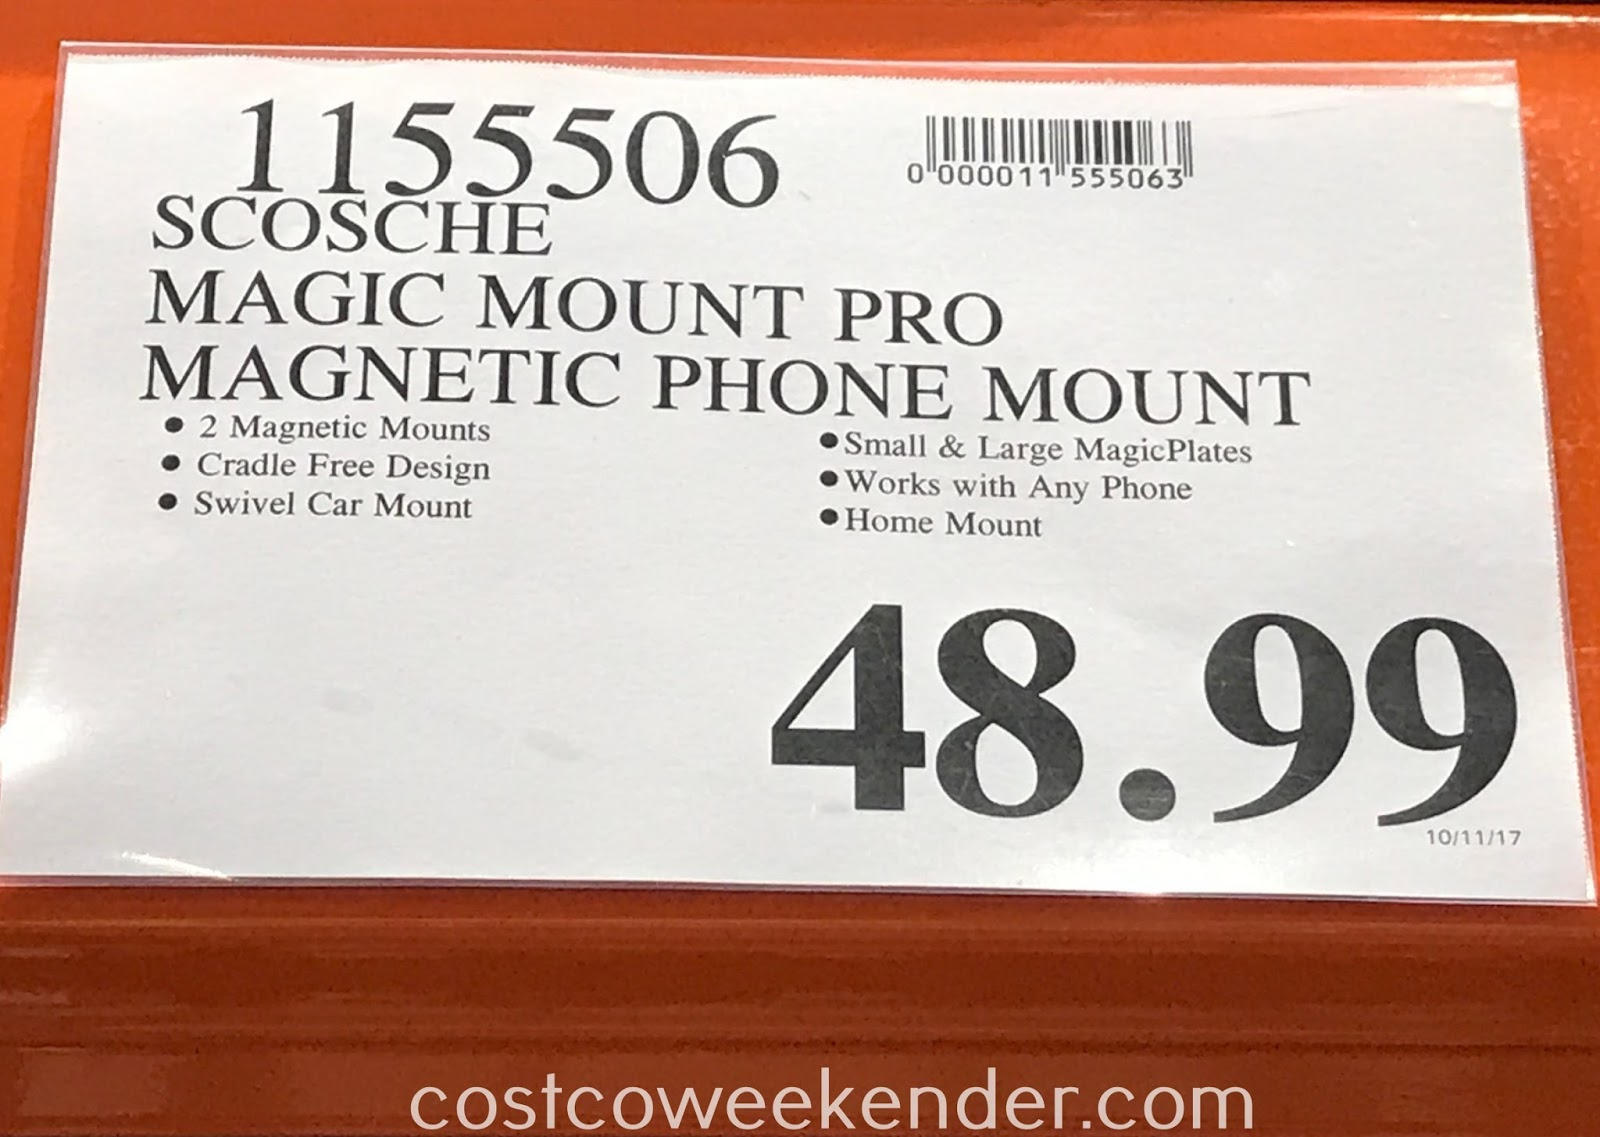 Deal for the Scosche Magic Mount Pro-Pack Magnetic Mounting System at Costco